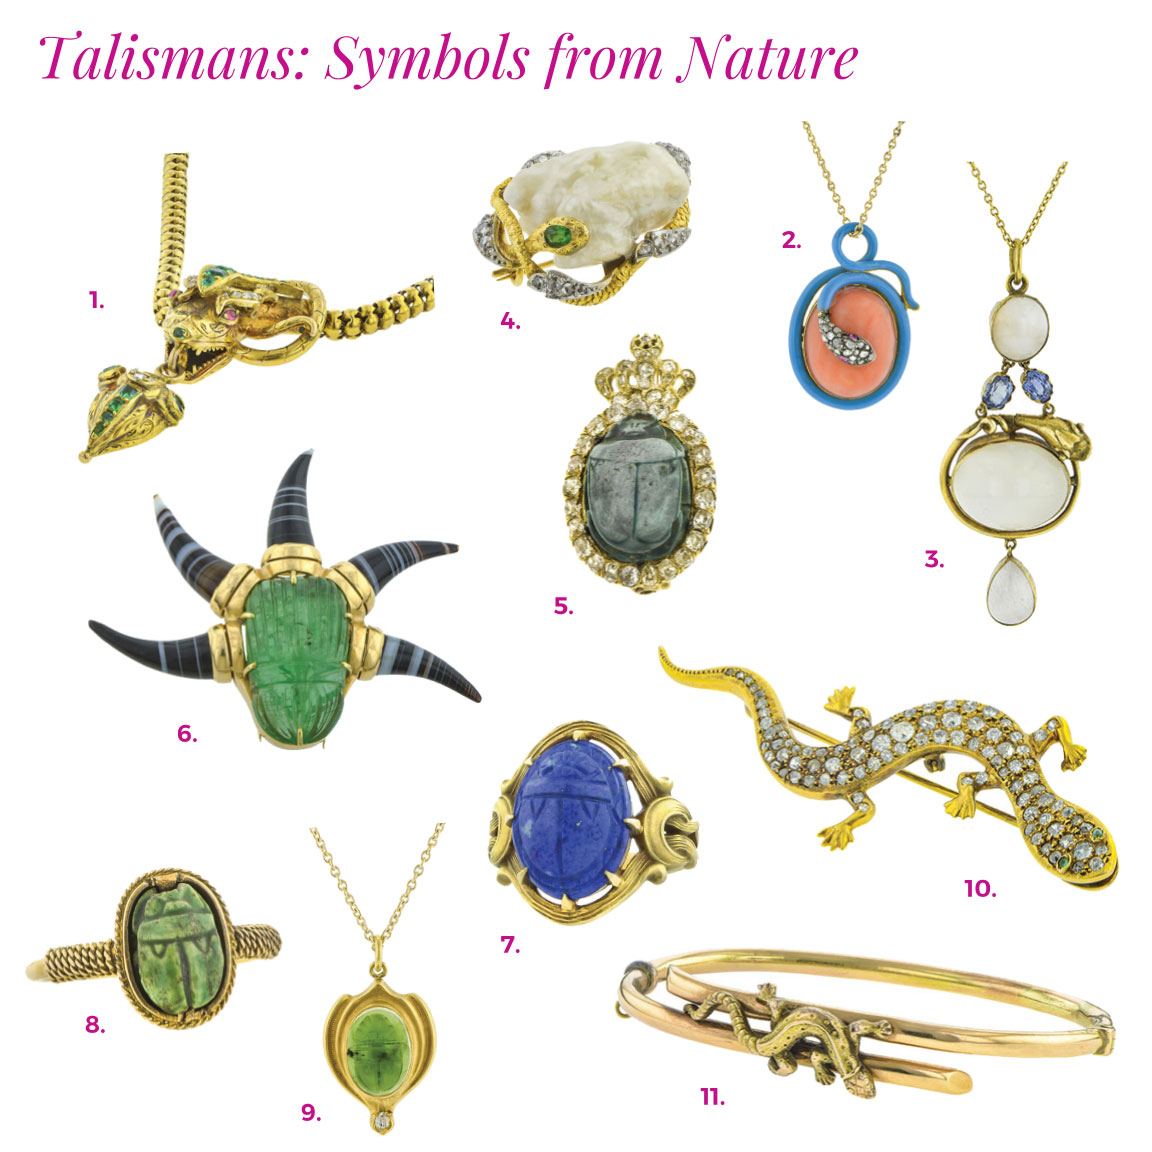 doyle and doyle talismans catalog snake antique scarab jewelry